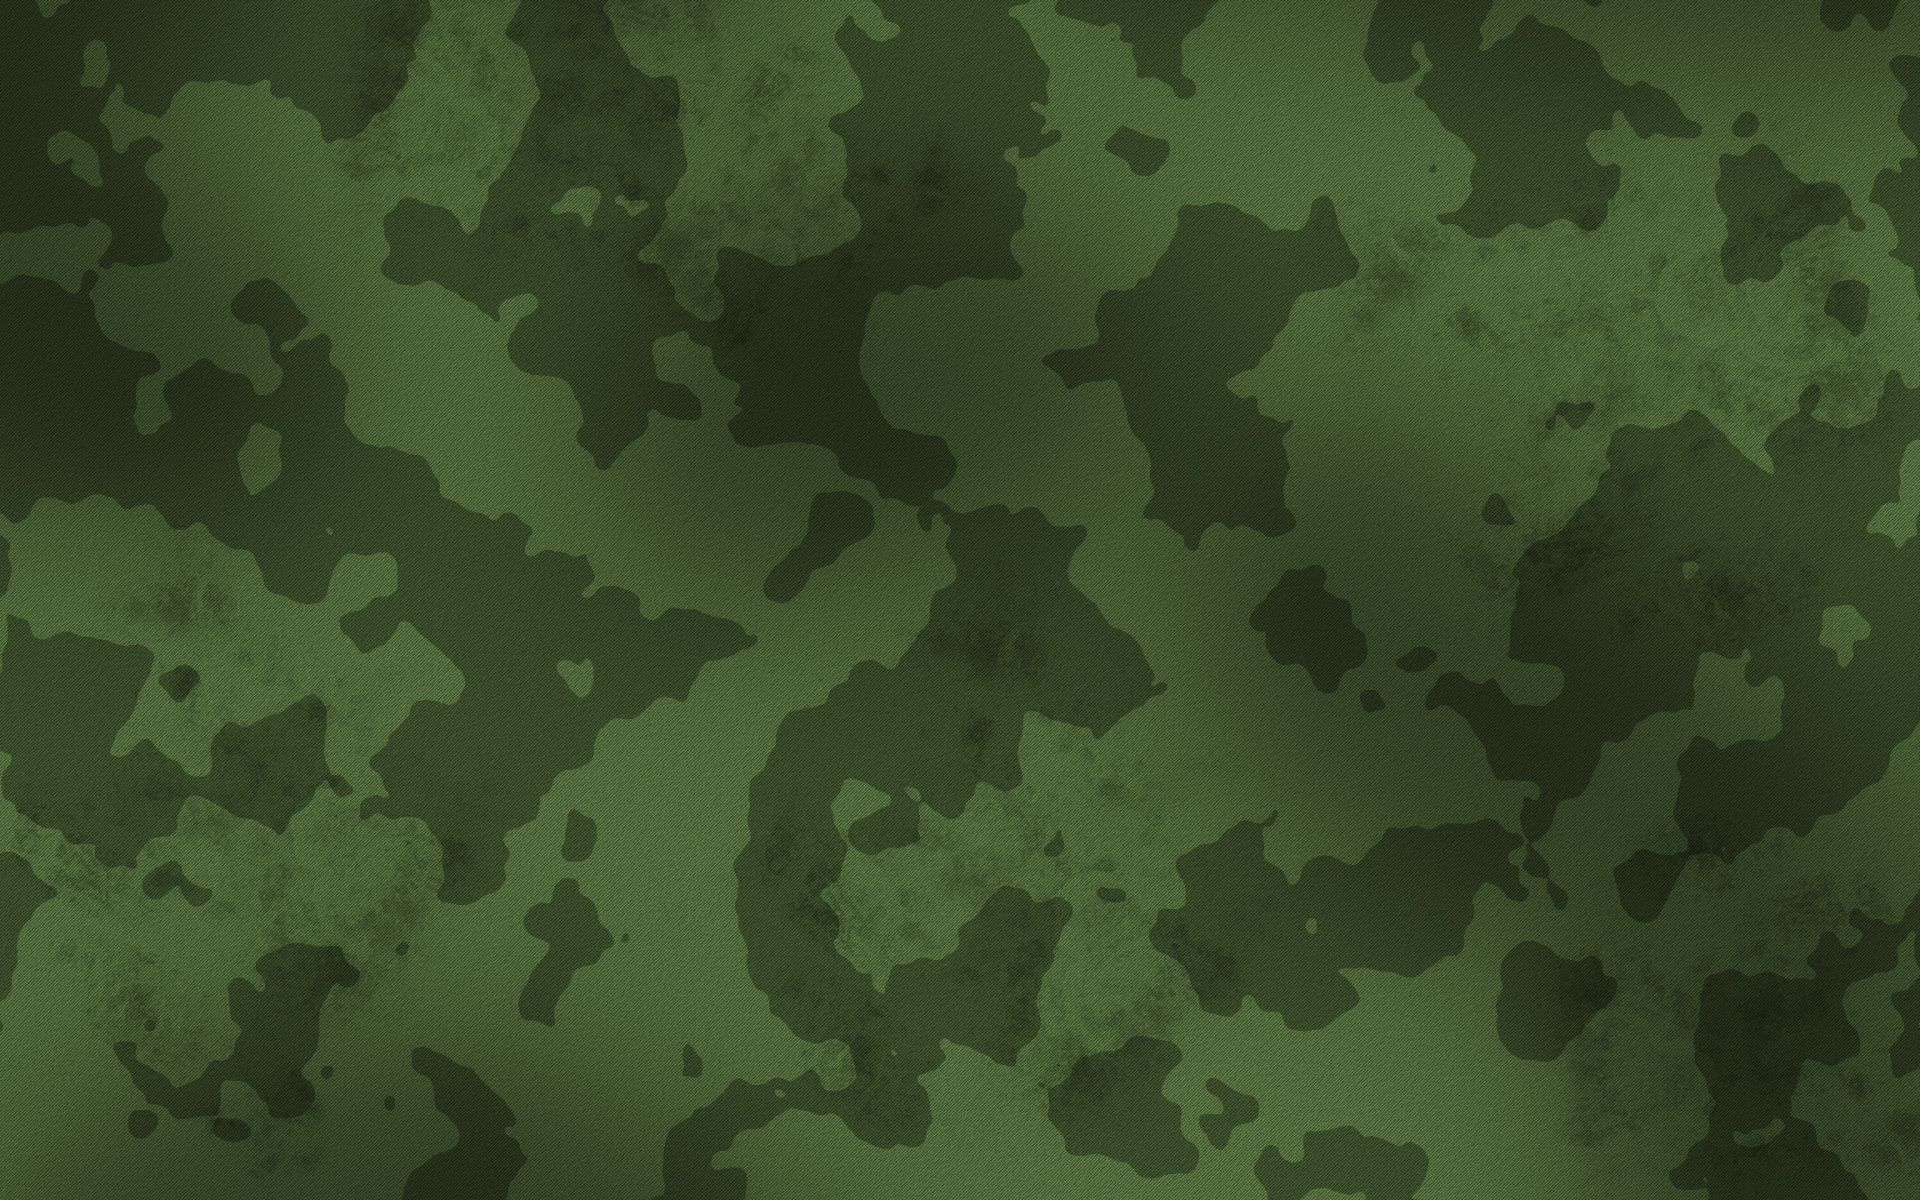 Download 1920x1200 Wallpaper Illustration Wall Grass Camouflage Military Free Background Images Desktop Background Images Wallpaper